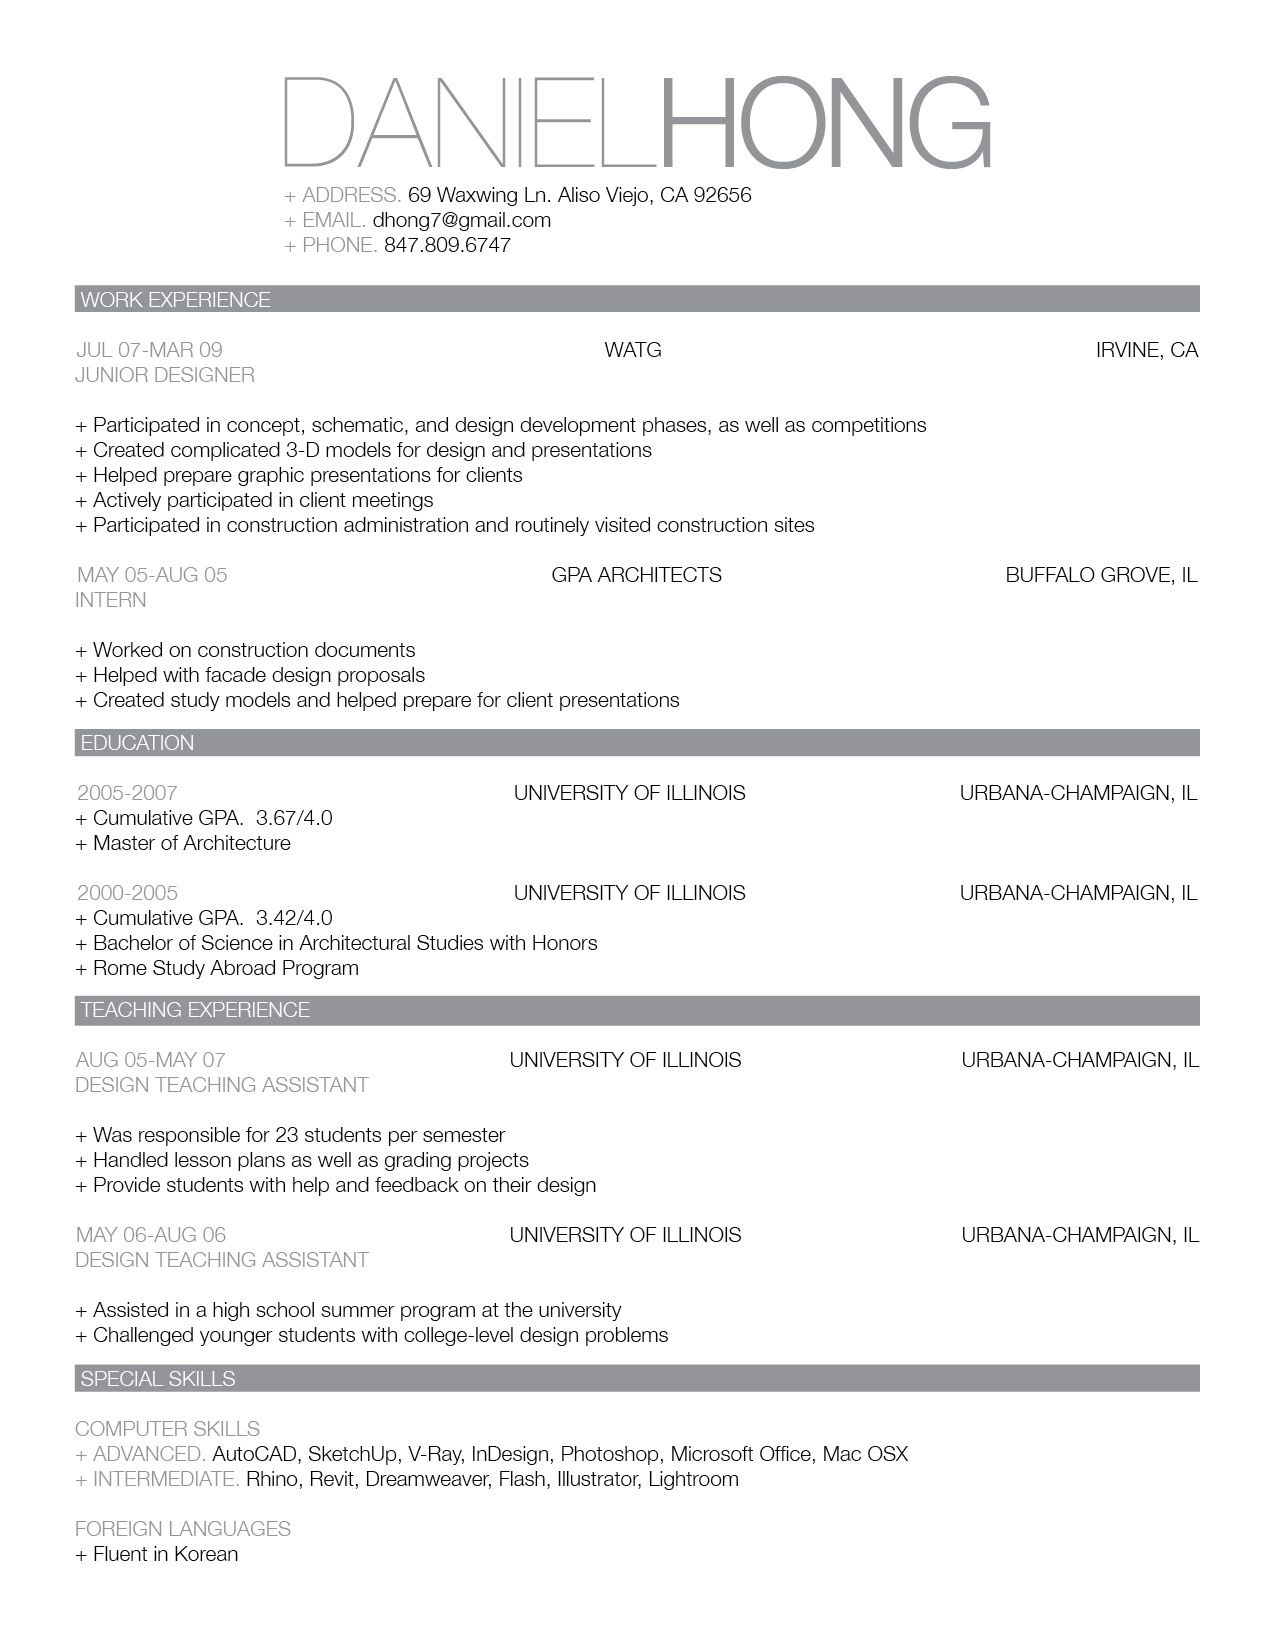 Free Resume Templates Microsoft Word Updated Cv And Work Sample  Professional Resume Sample Resume